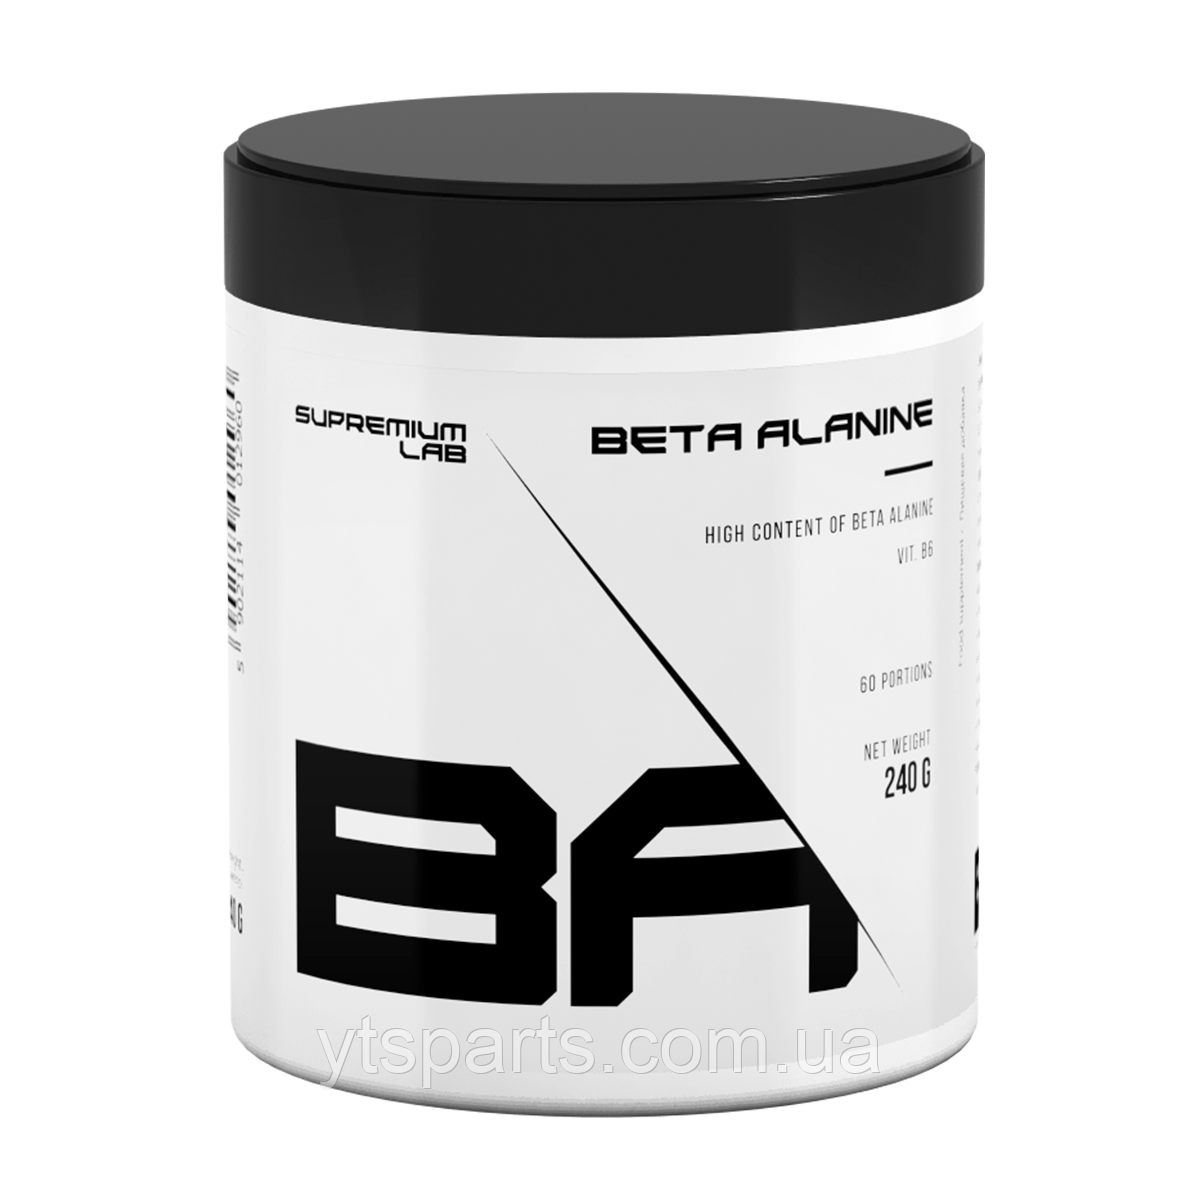 SUPREMIUM LAB BETA ALANINE 240 g